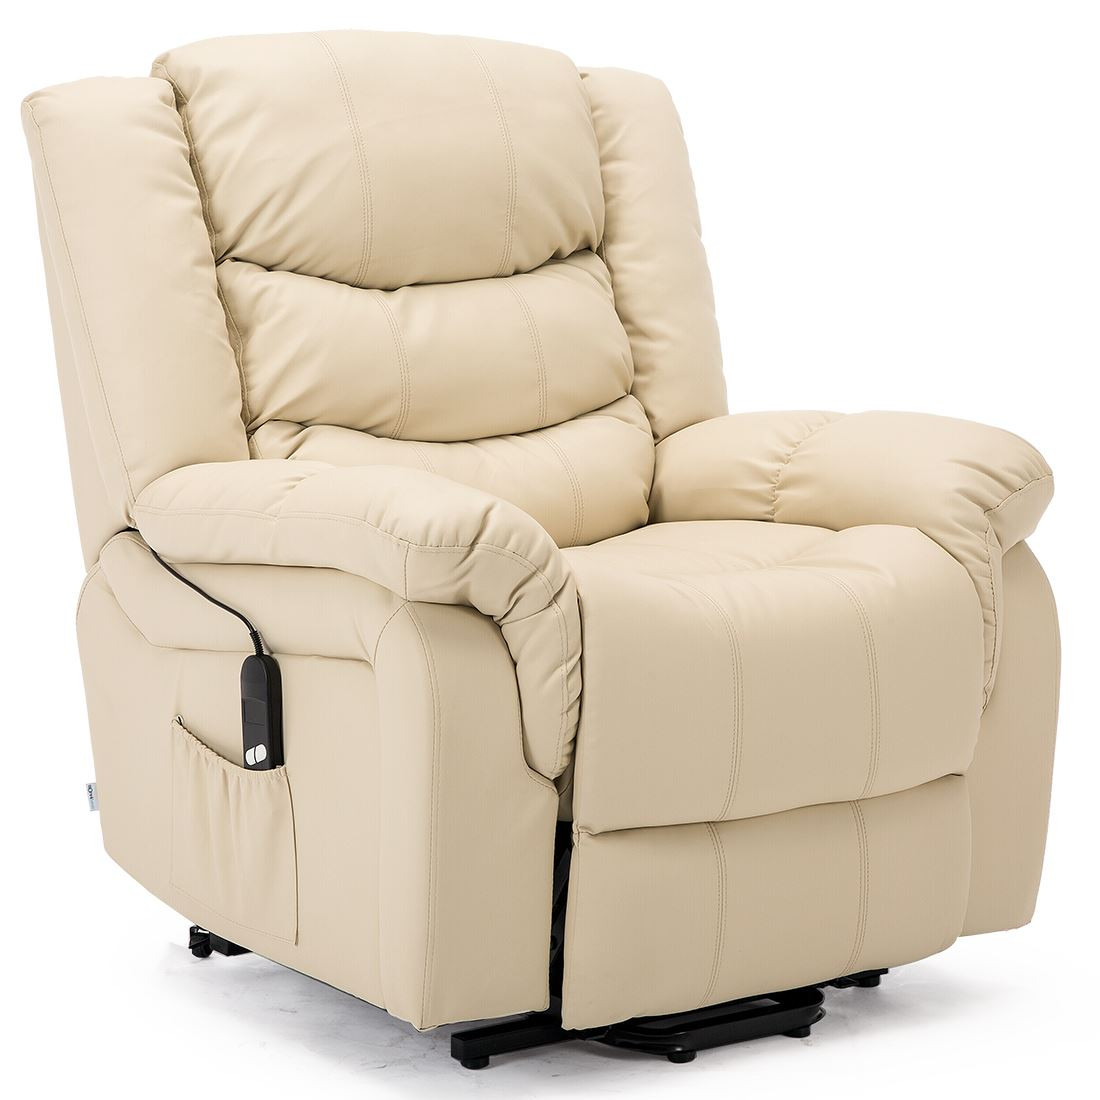 SEATTLE-ELECTRIC-RISE-REAL-LEATHER-RECLINER-ARMCHAIR-SOFA-HOME-LOUNGE-CHAIR thumbnail 23